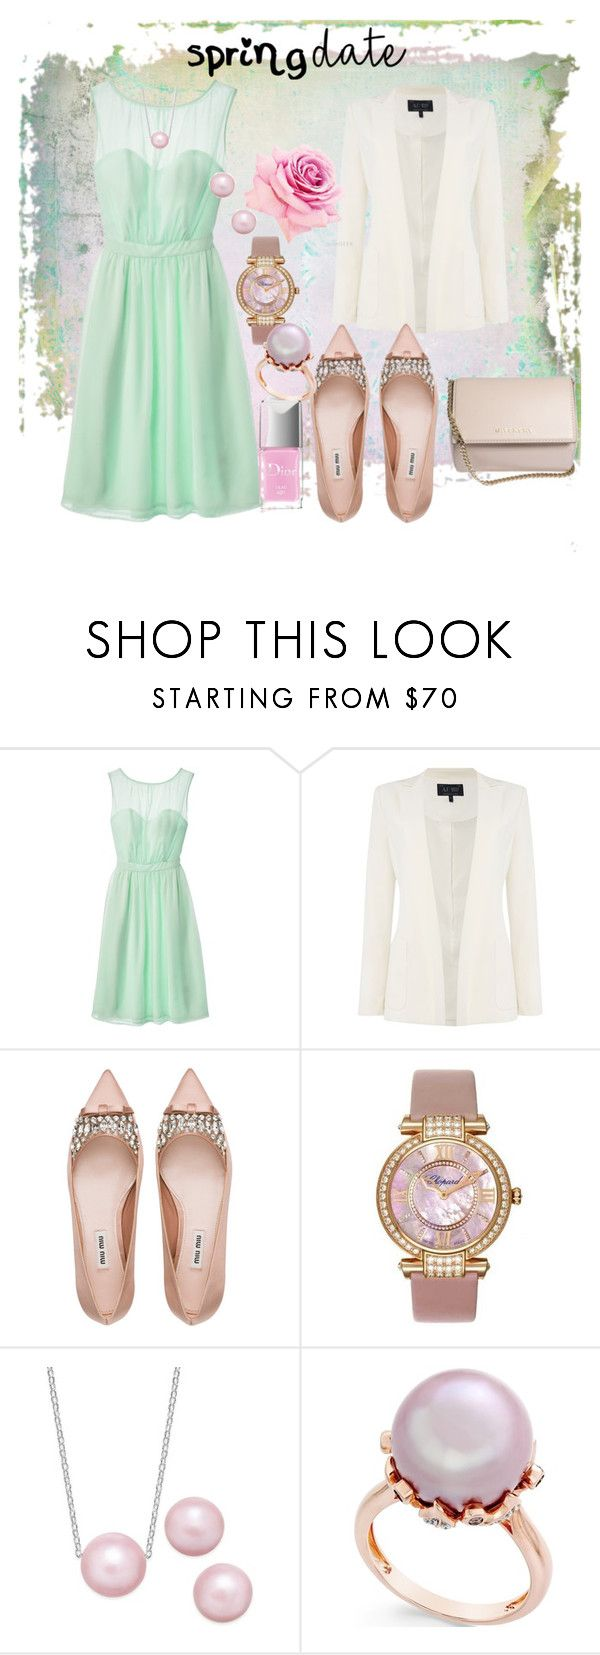 """""""Hey there"""" by emeraldz ❤ liked on Polyvore featuring Tevolio, Armani Jeans, Miu Miu, Chopard and Givenchy"""